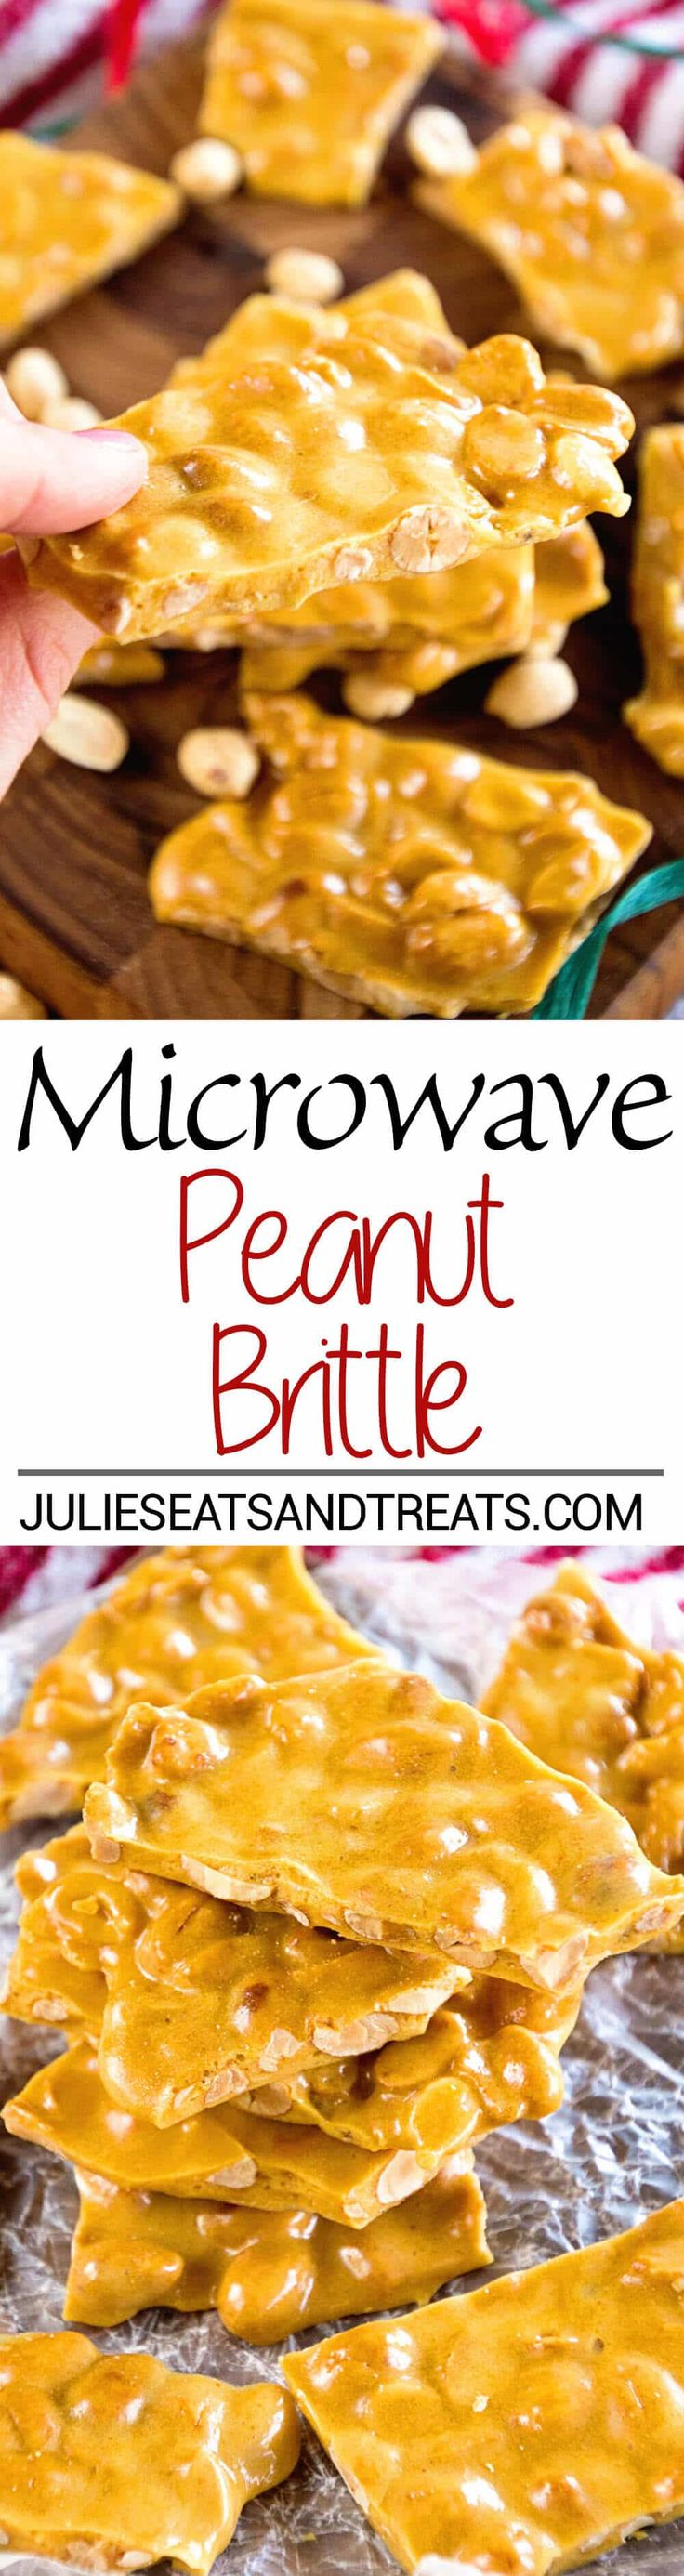 Microwave Peanut Brittle Recipe ~ Quick and Easy Christmas Treat that's Made in your Microwave! This Sweet is perfect for Goodie Trays! via @julieseats